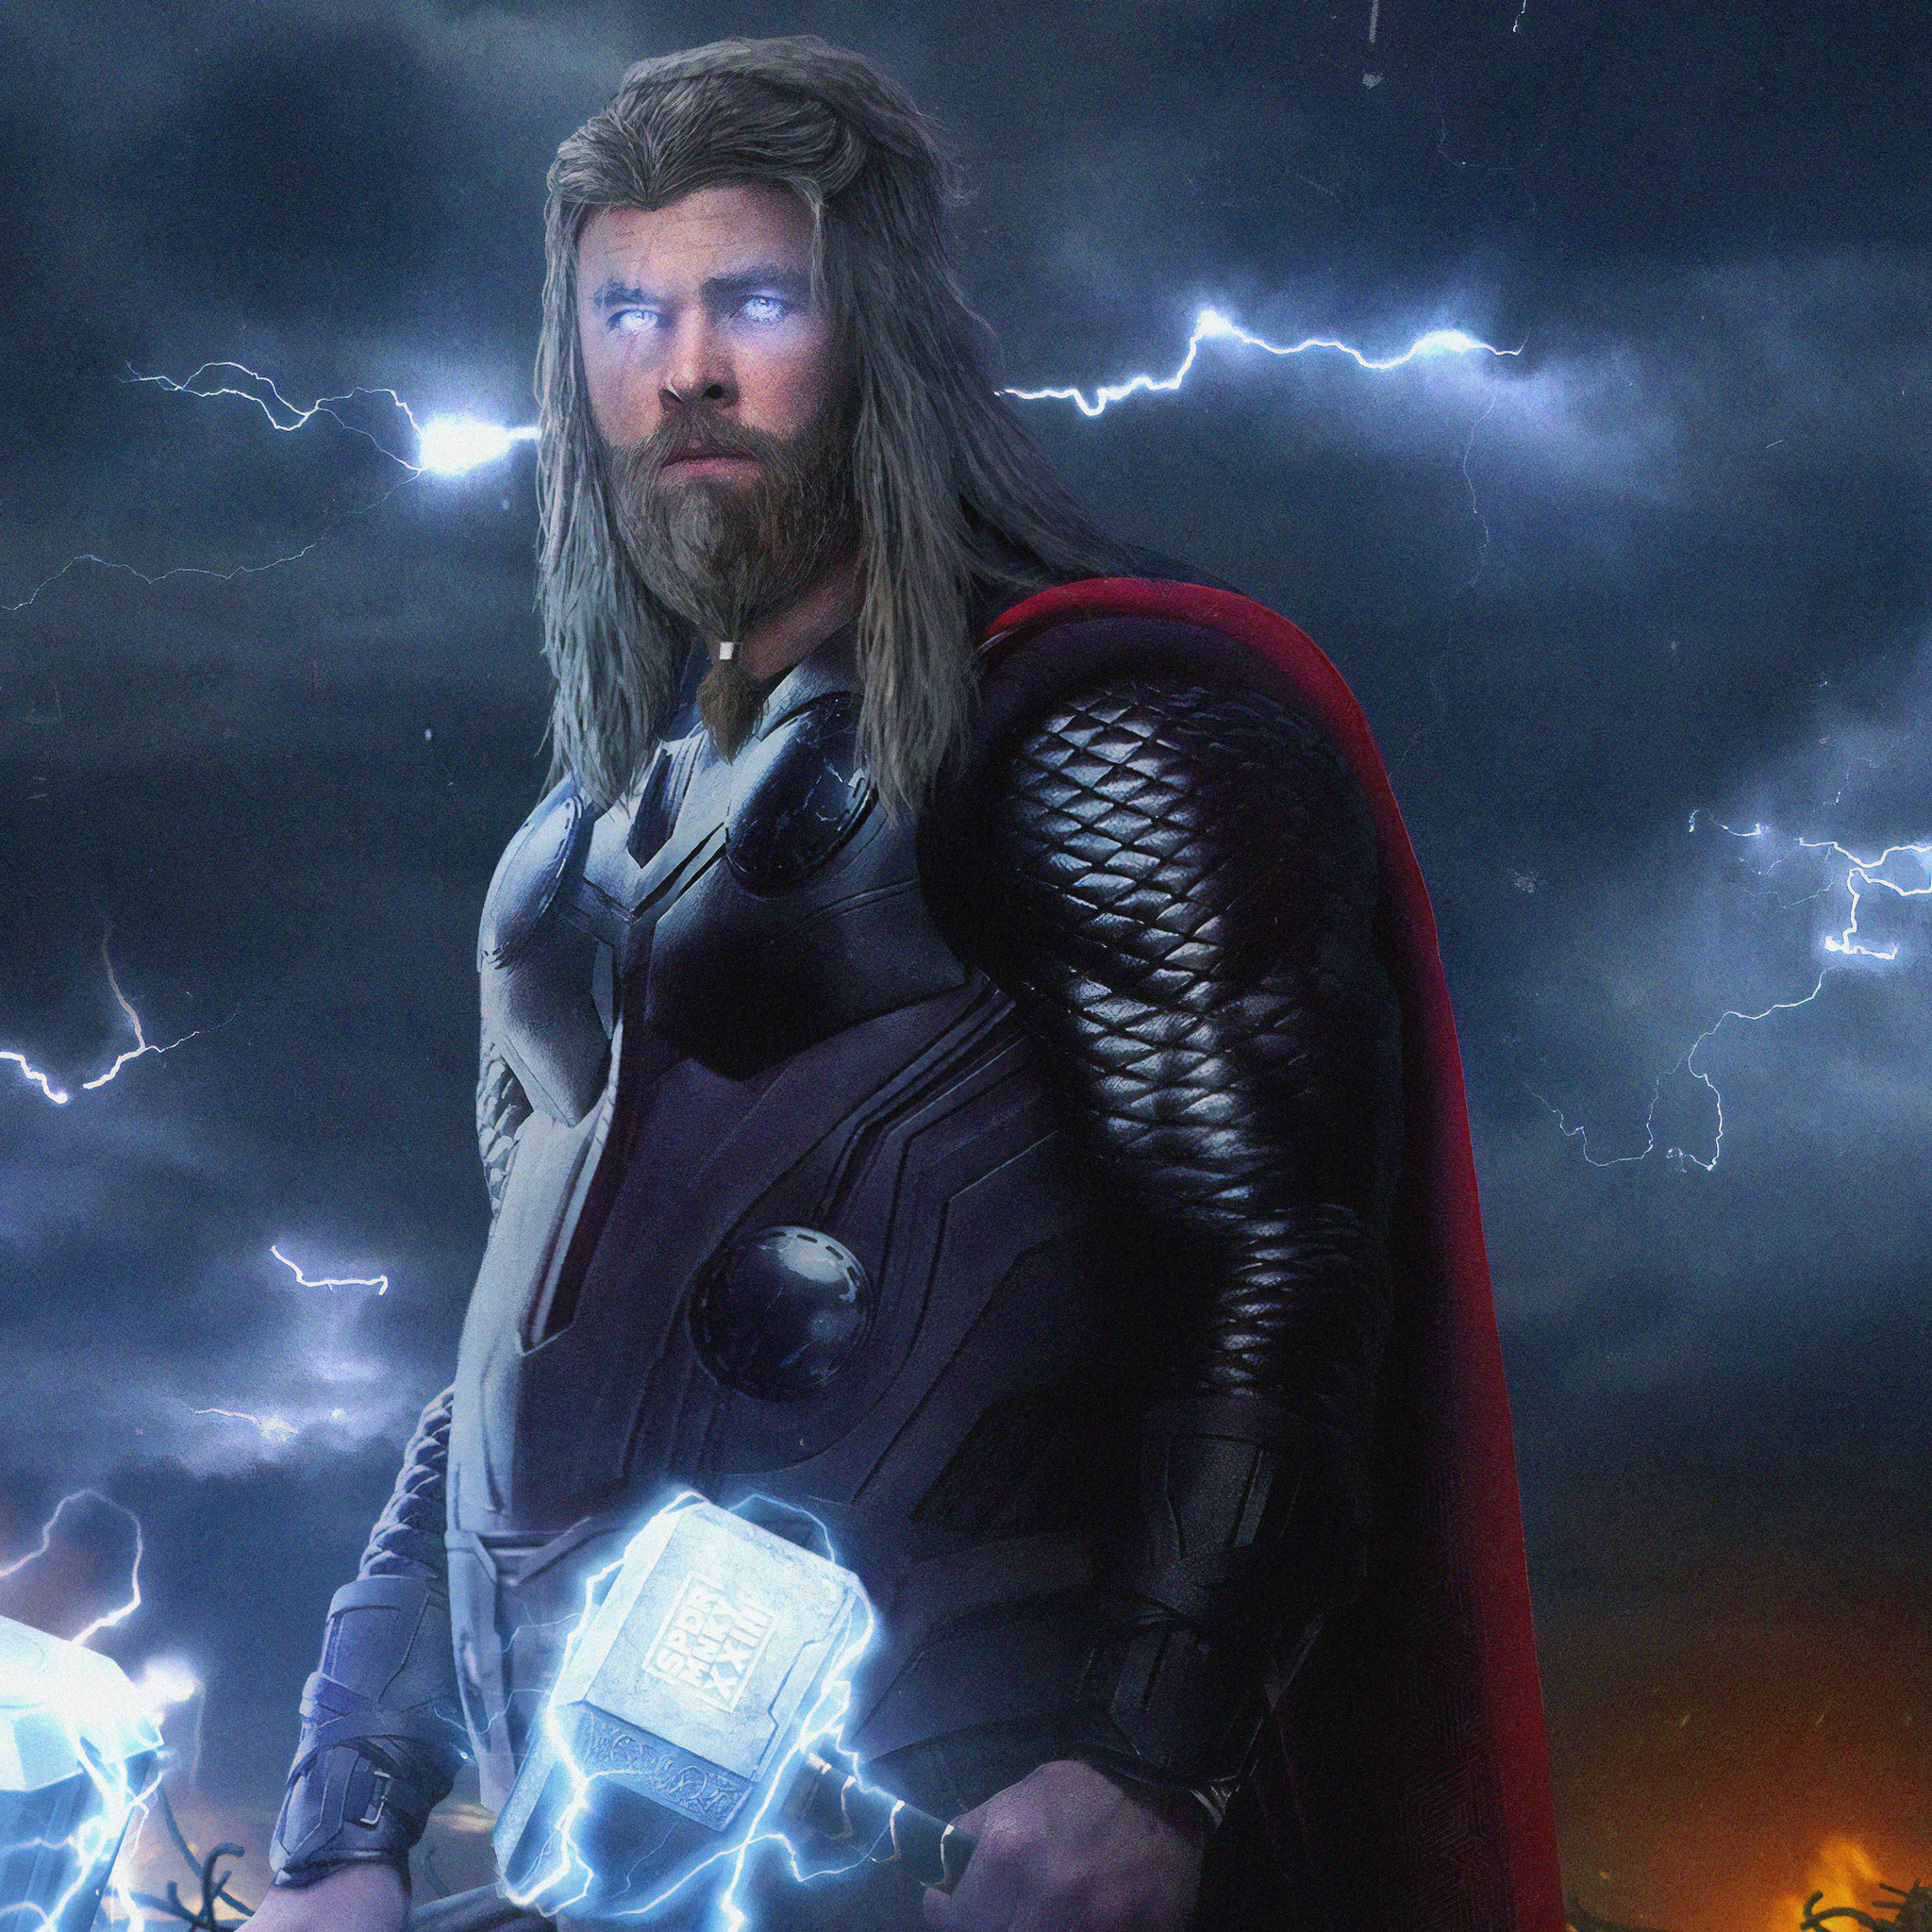 2048x2048 Thor New 4k Ipad Air HD 4k Wallpapers, Images ...